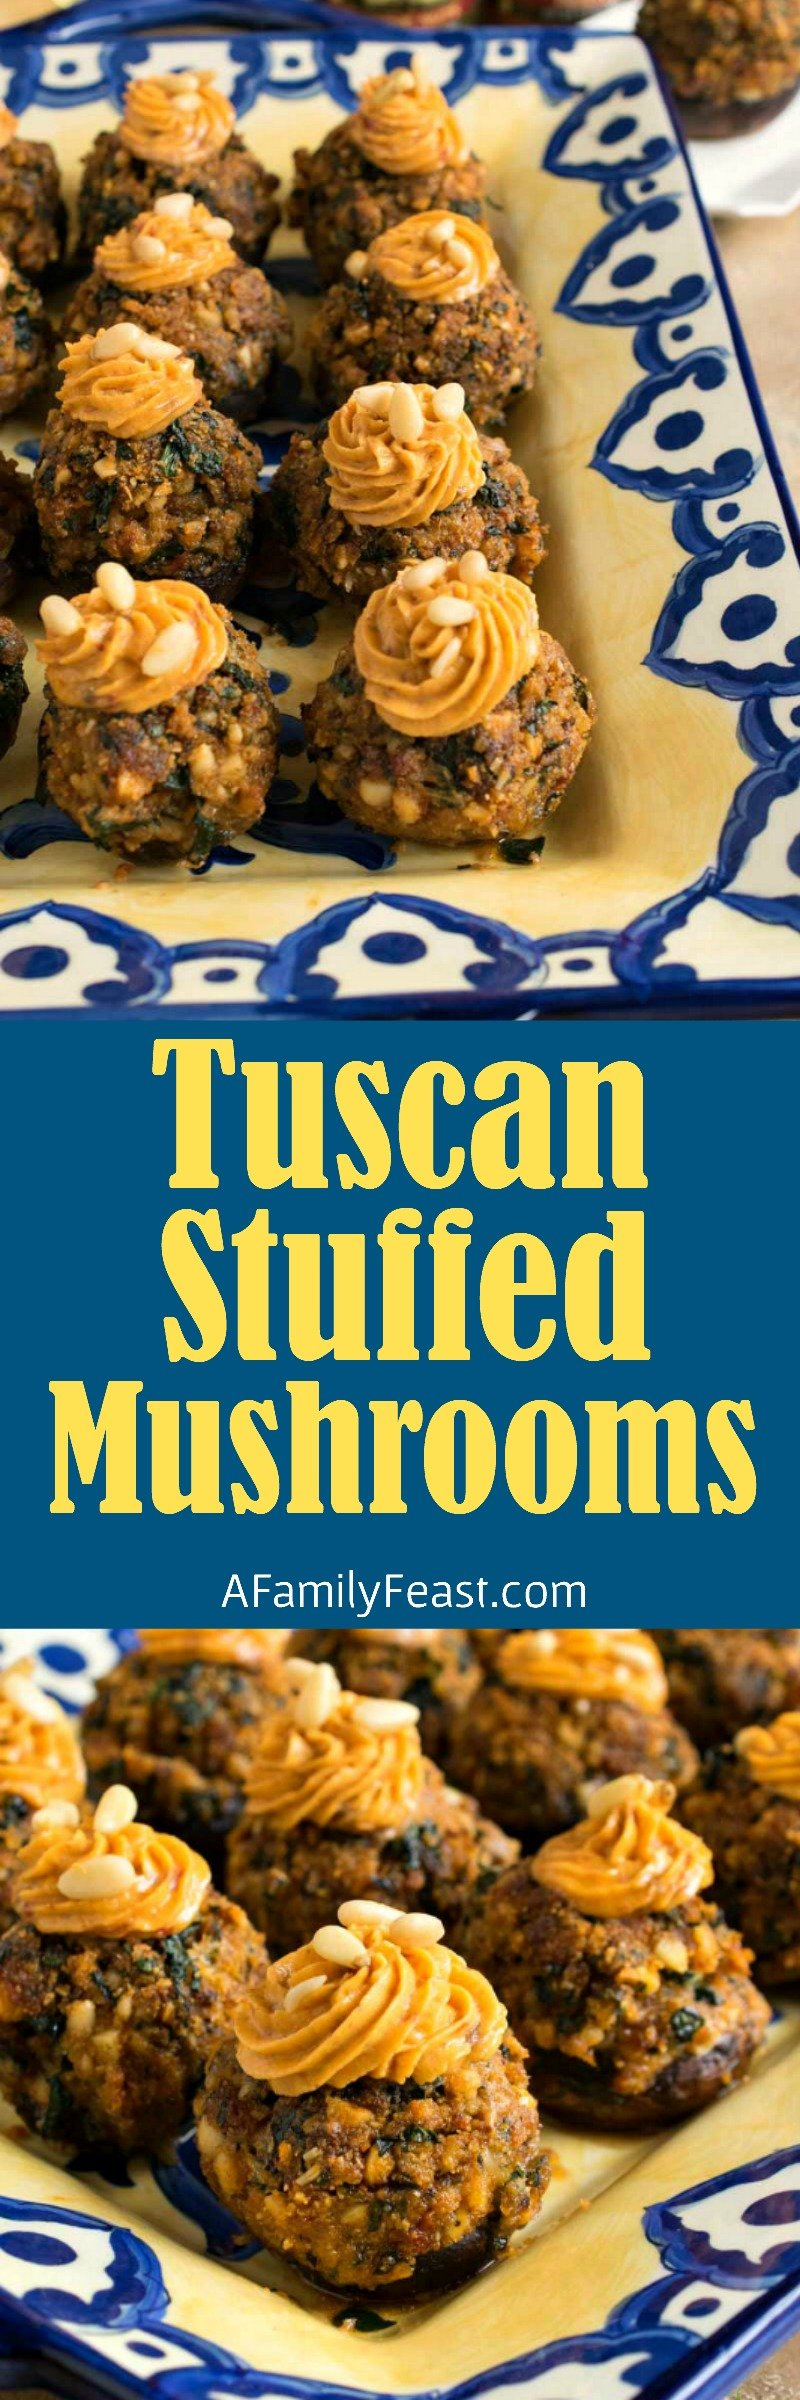 These delicious Tuscan Stuffed Mushrooms are full of fantastic flavor. Sun dried tomato pesto, pine nuts, cheese and breadcrumbs. A perfect holiday appetizer!